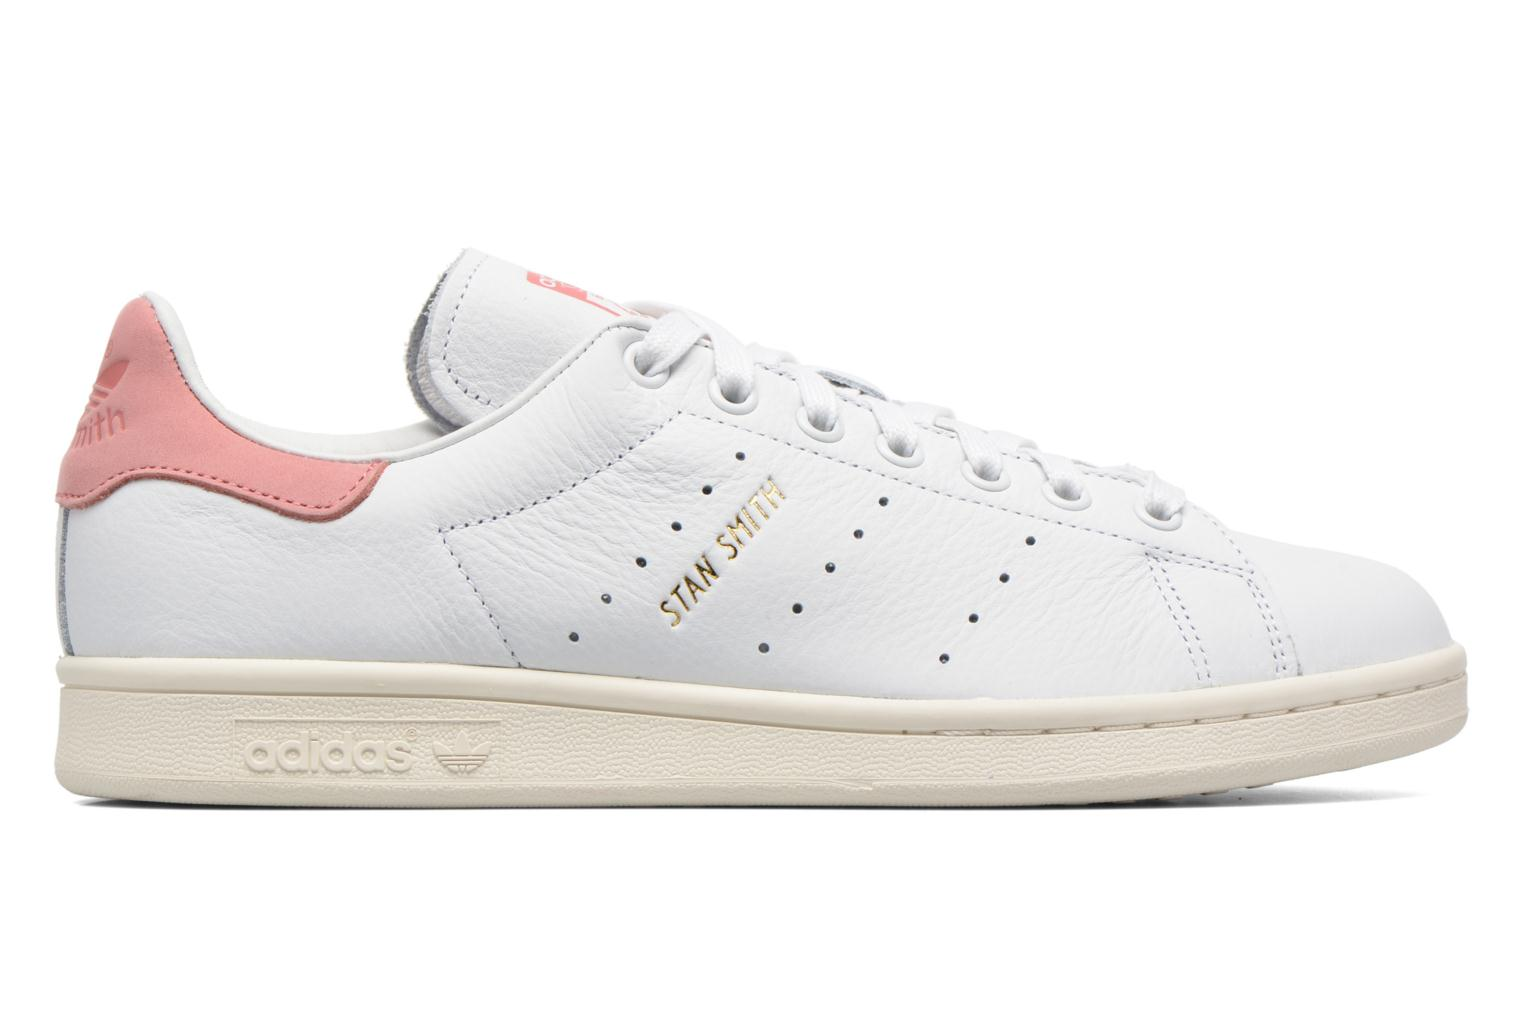 Stan Smith Ftwbla/Ftwbla/Rosray